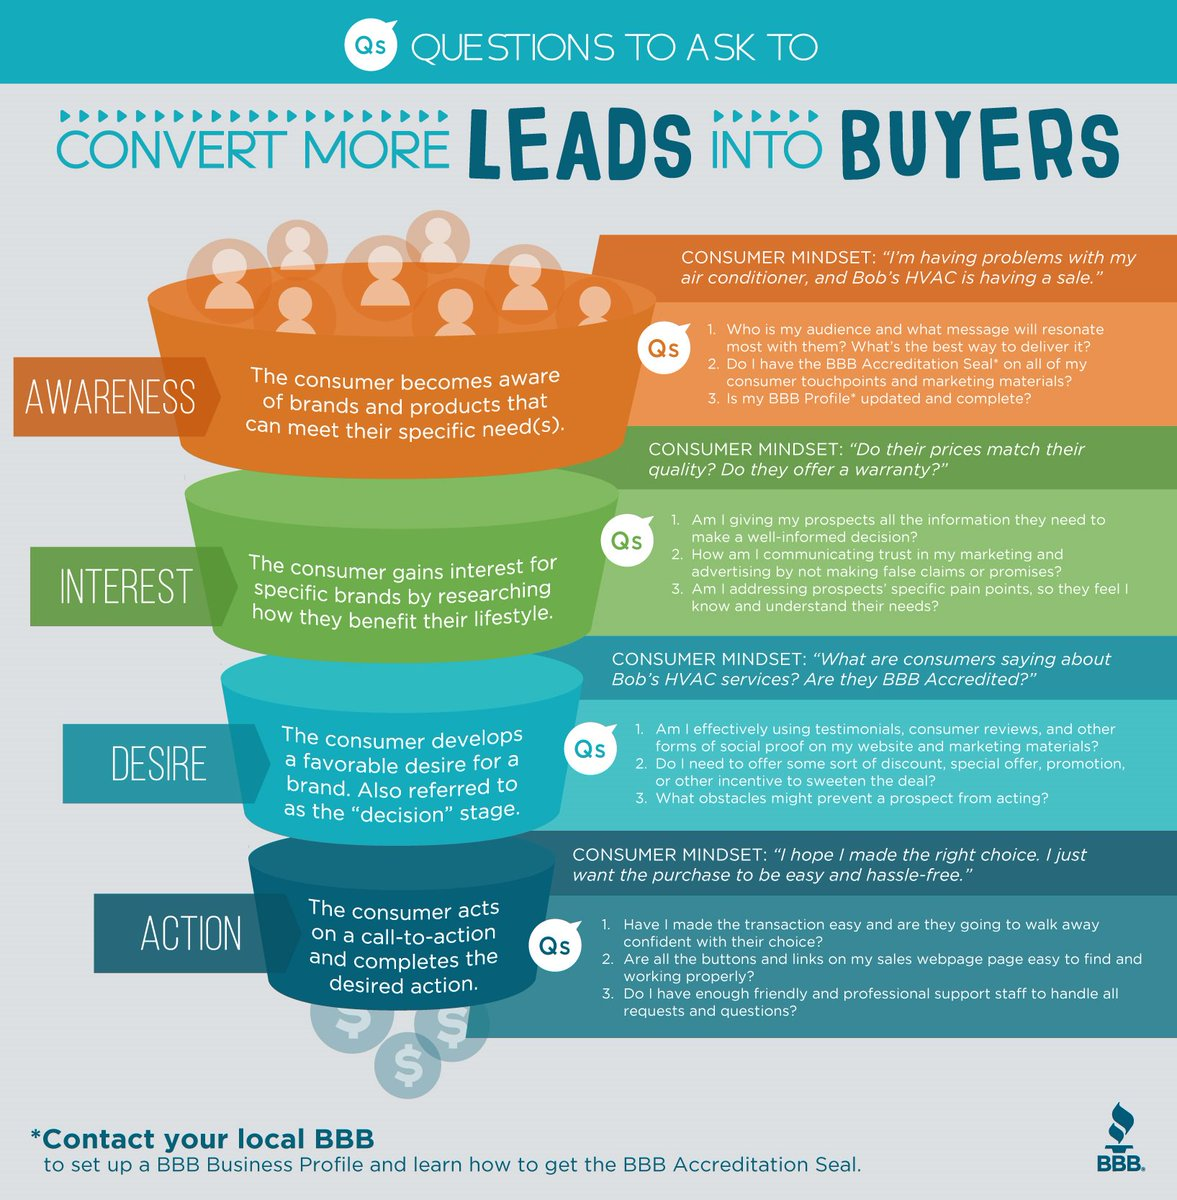 The key to winning more #customers? Ask questions and know their mindset at each stage of the #sales funnel:  http:// ow.ly/TZLR30fAeXx  &nbsp;  <br>http://pic.twitter.com/k00Q6z4lpI